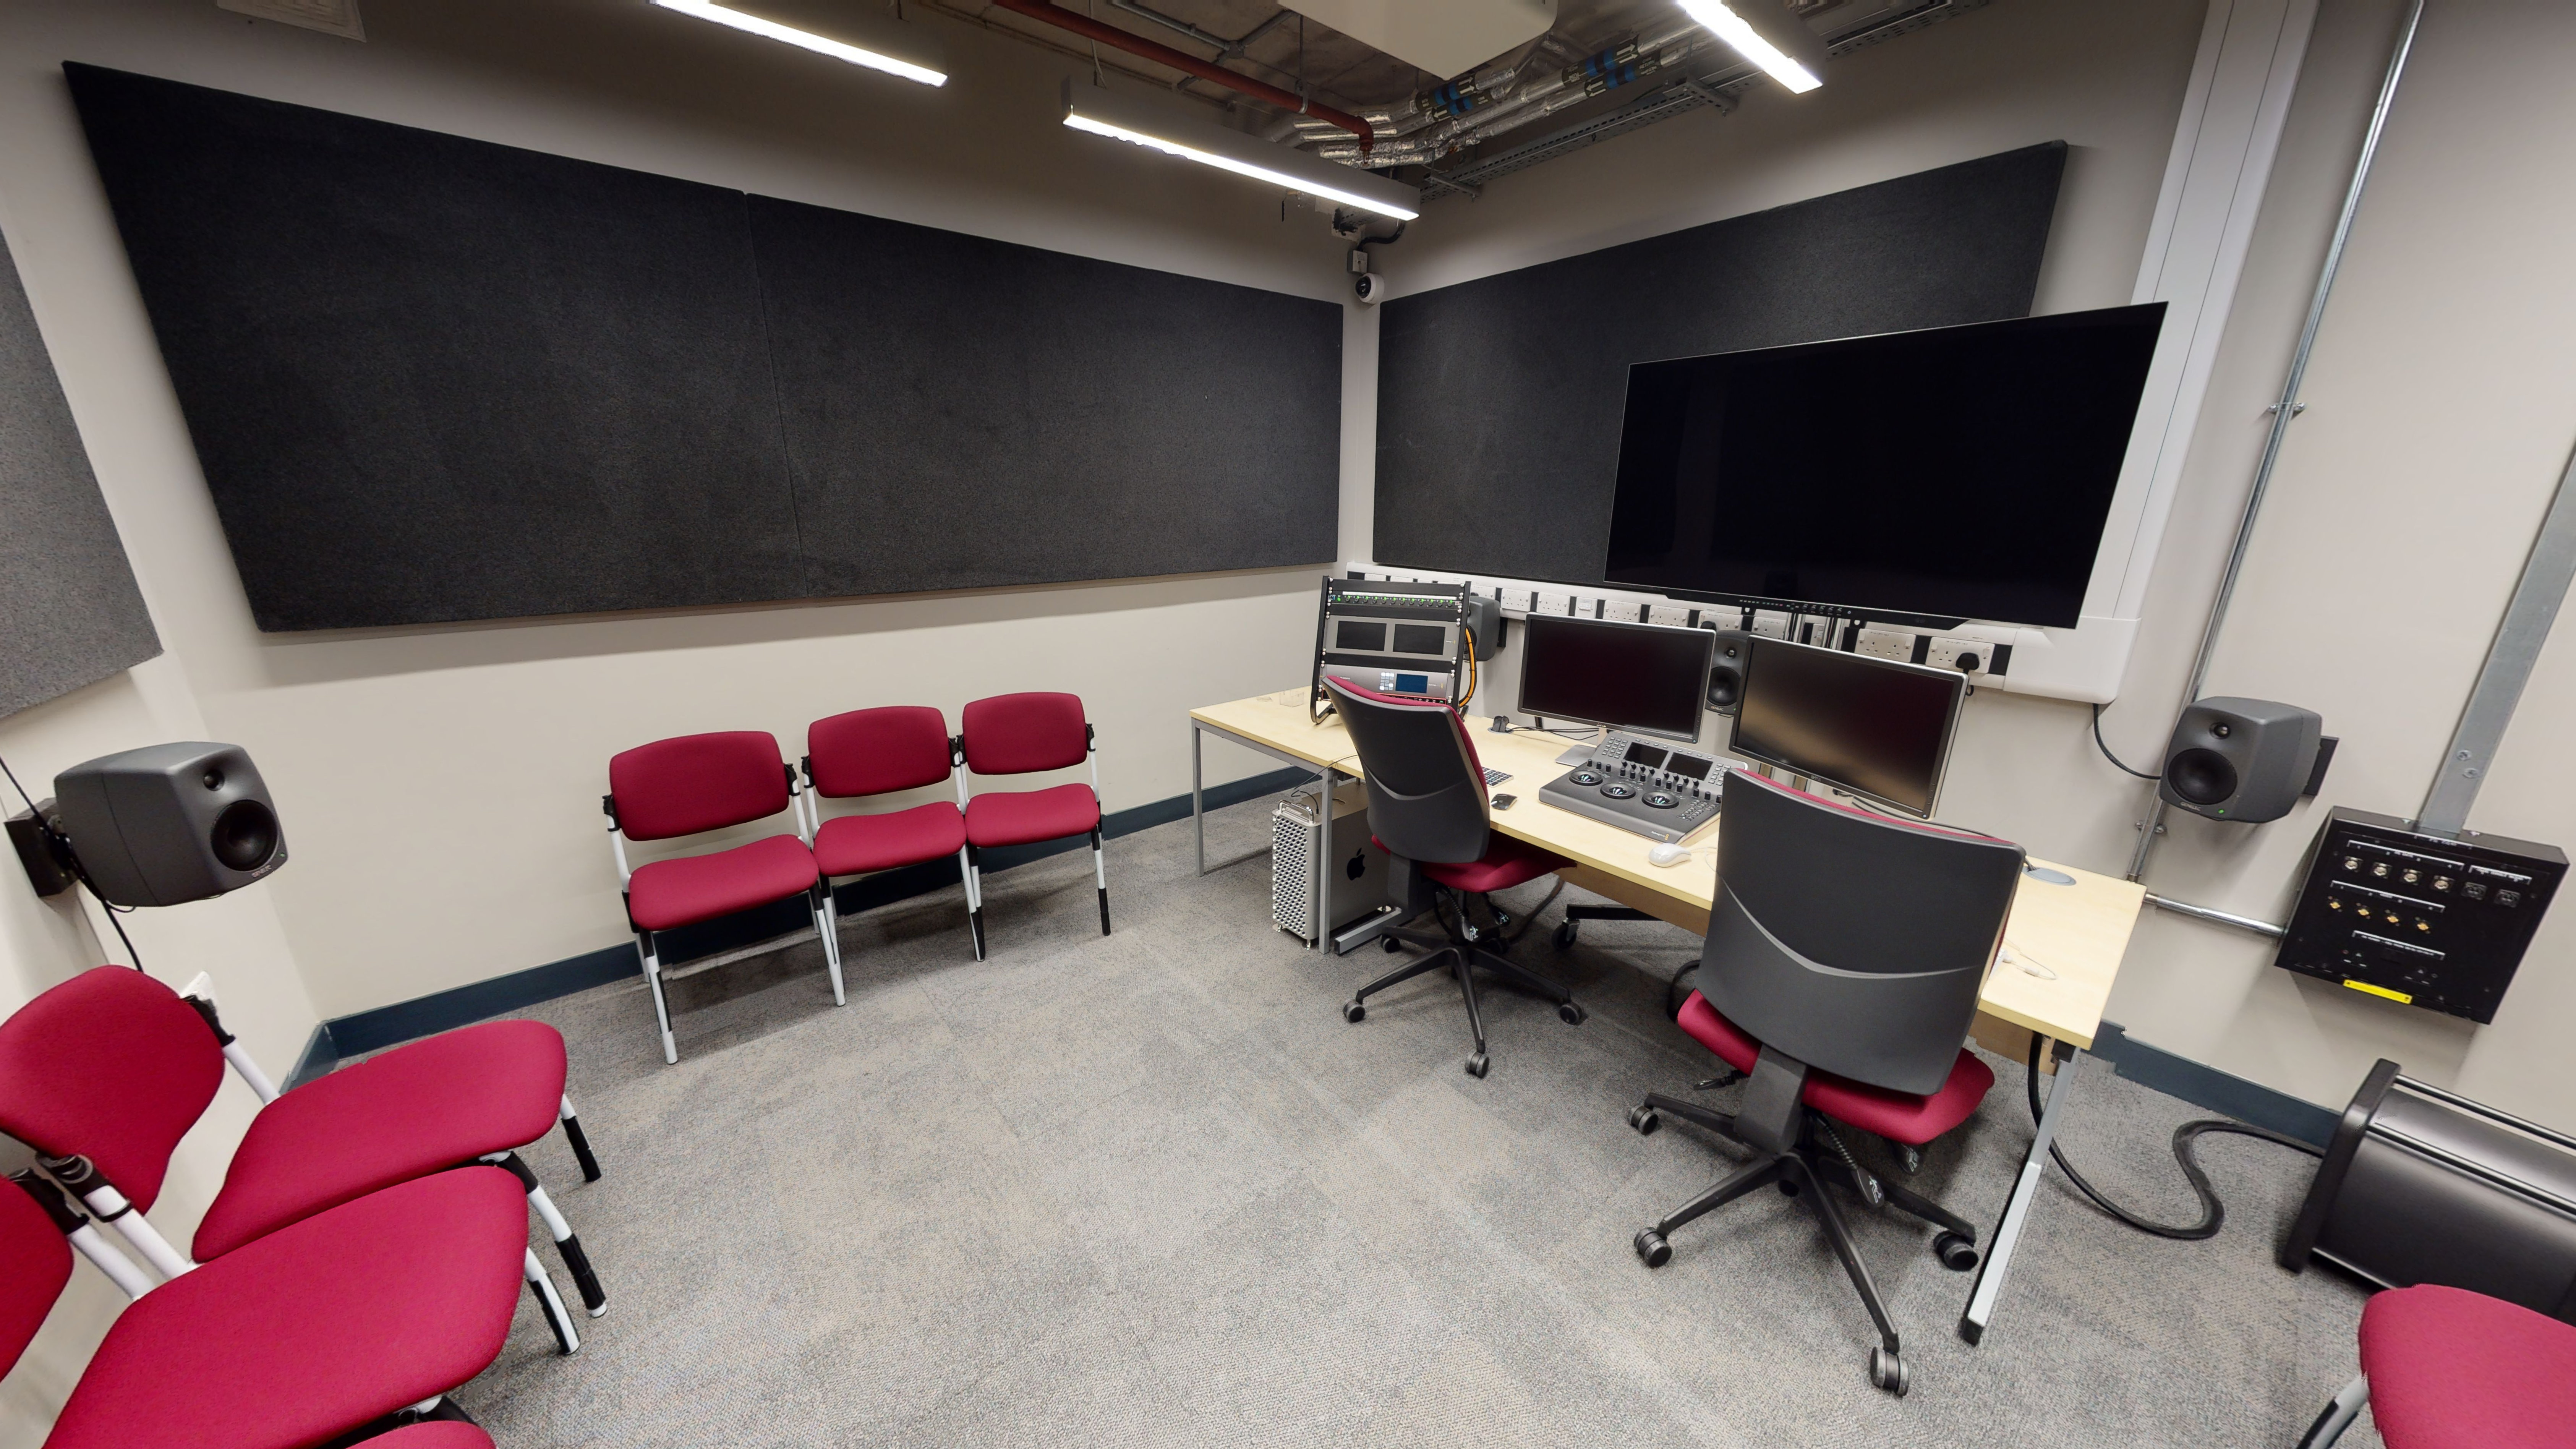 Desk with several large monitors and speakers with seating for a number of people.